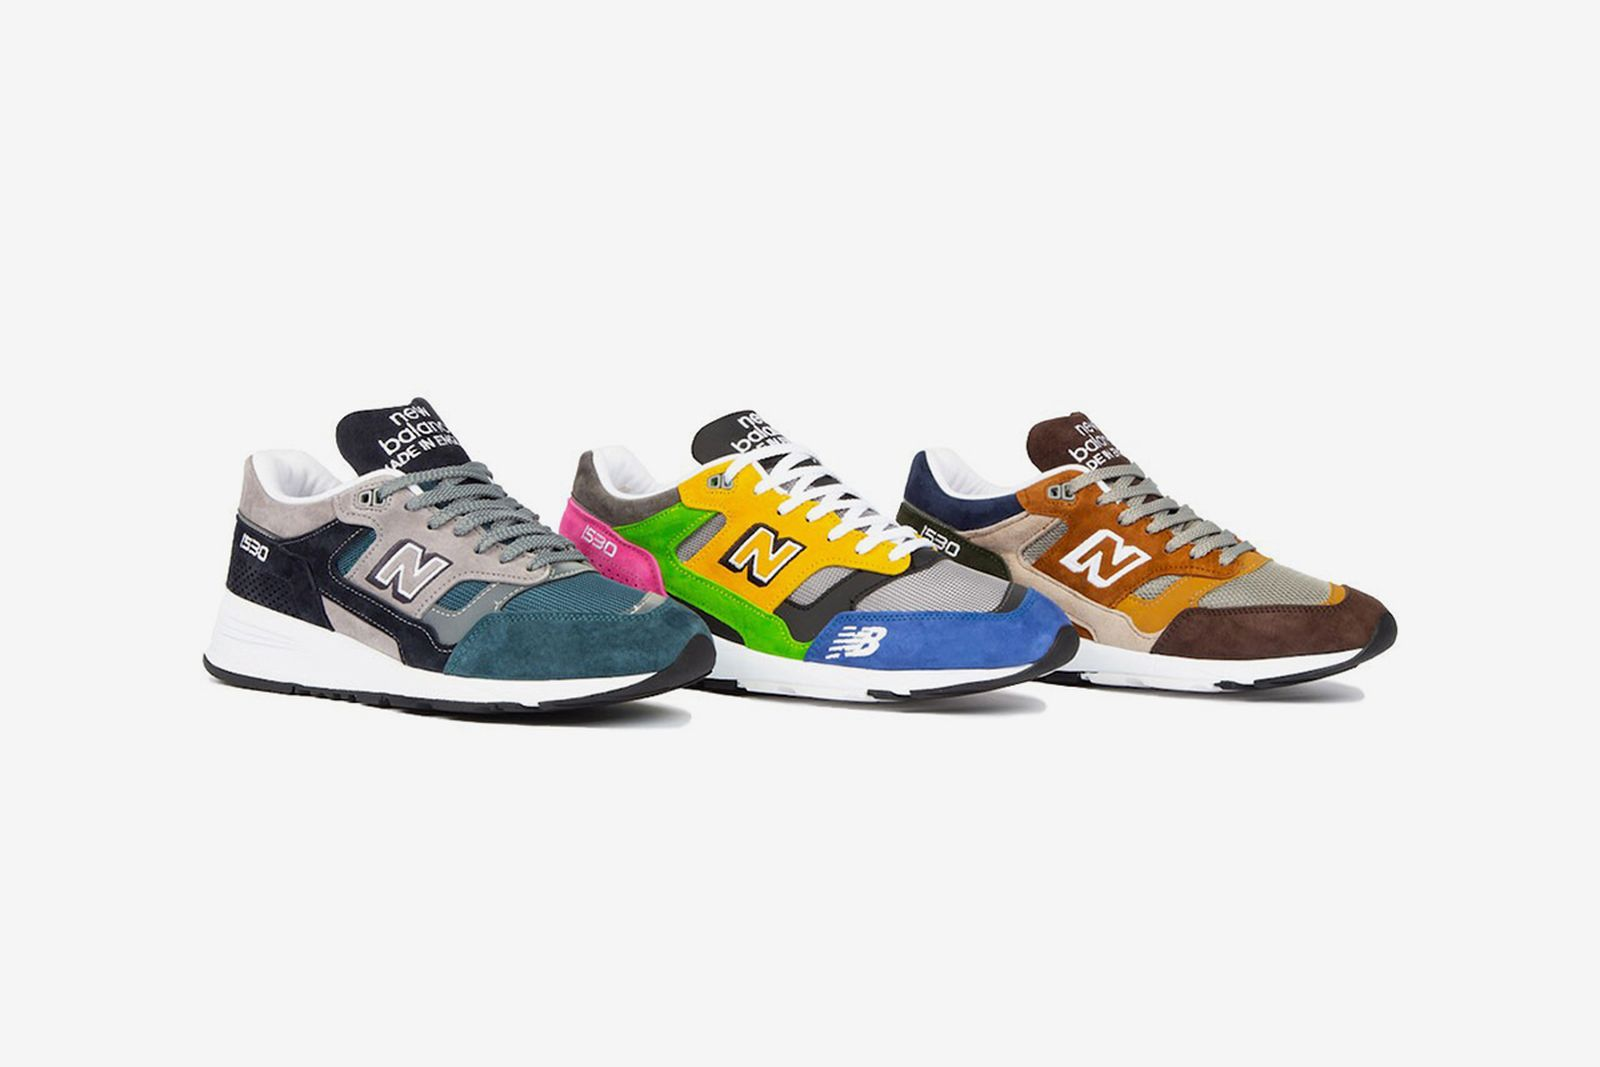 New Balance Is Releasing Colorways of the 1500 & 1530 at Random